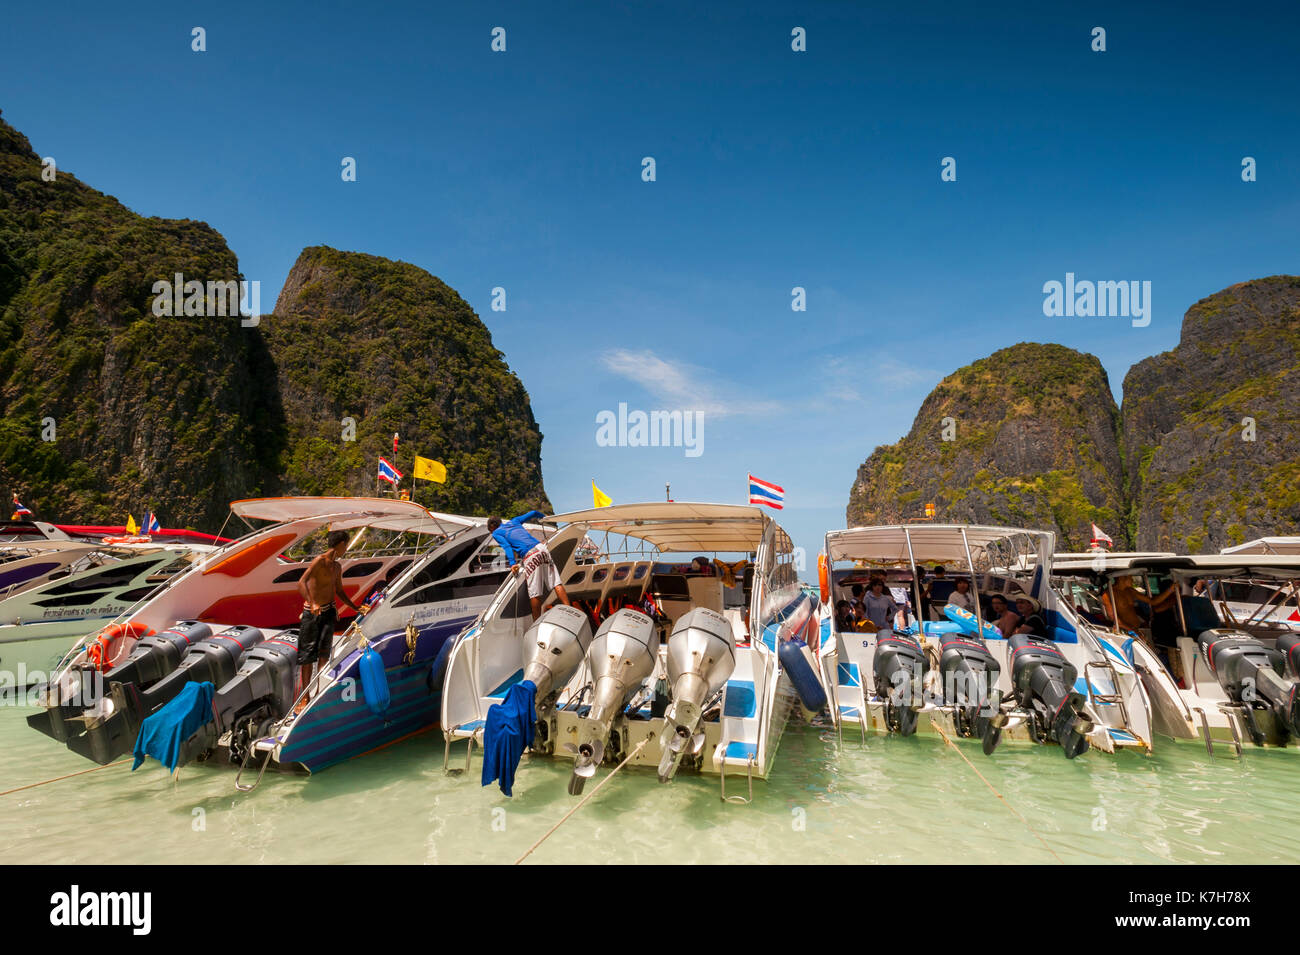 Tourist boats lined up at Maya Bay, Ko Phi Phi Lee Island, Thailand. - Stock Image